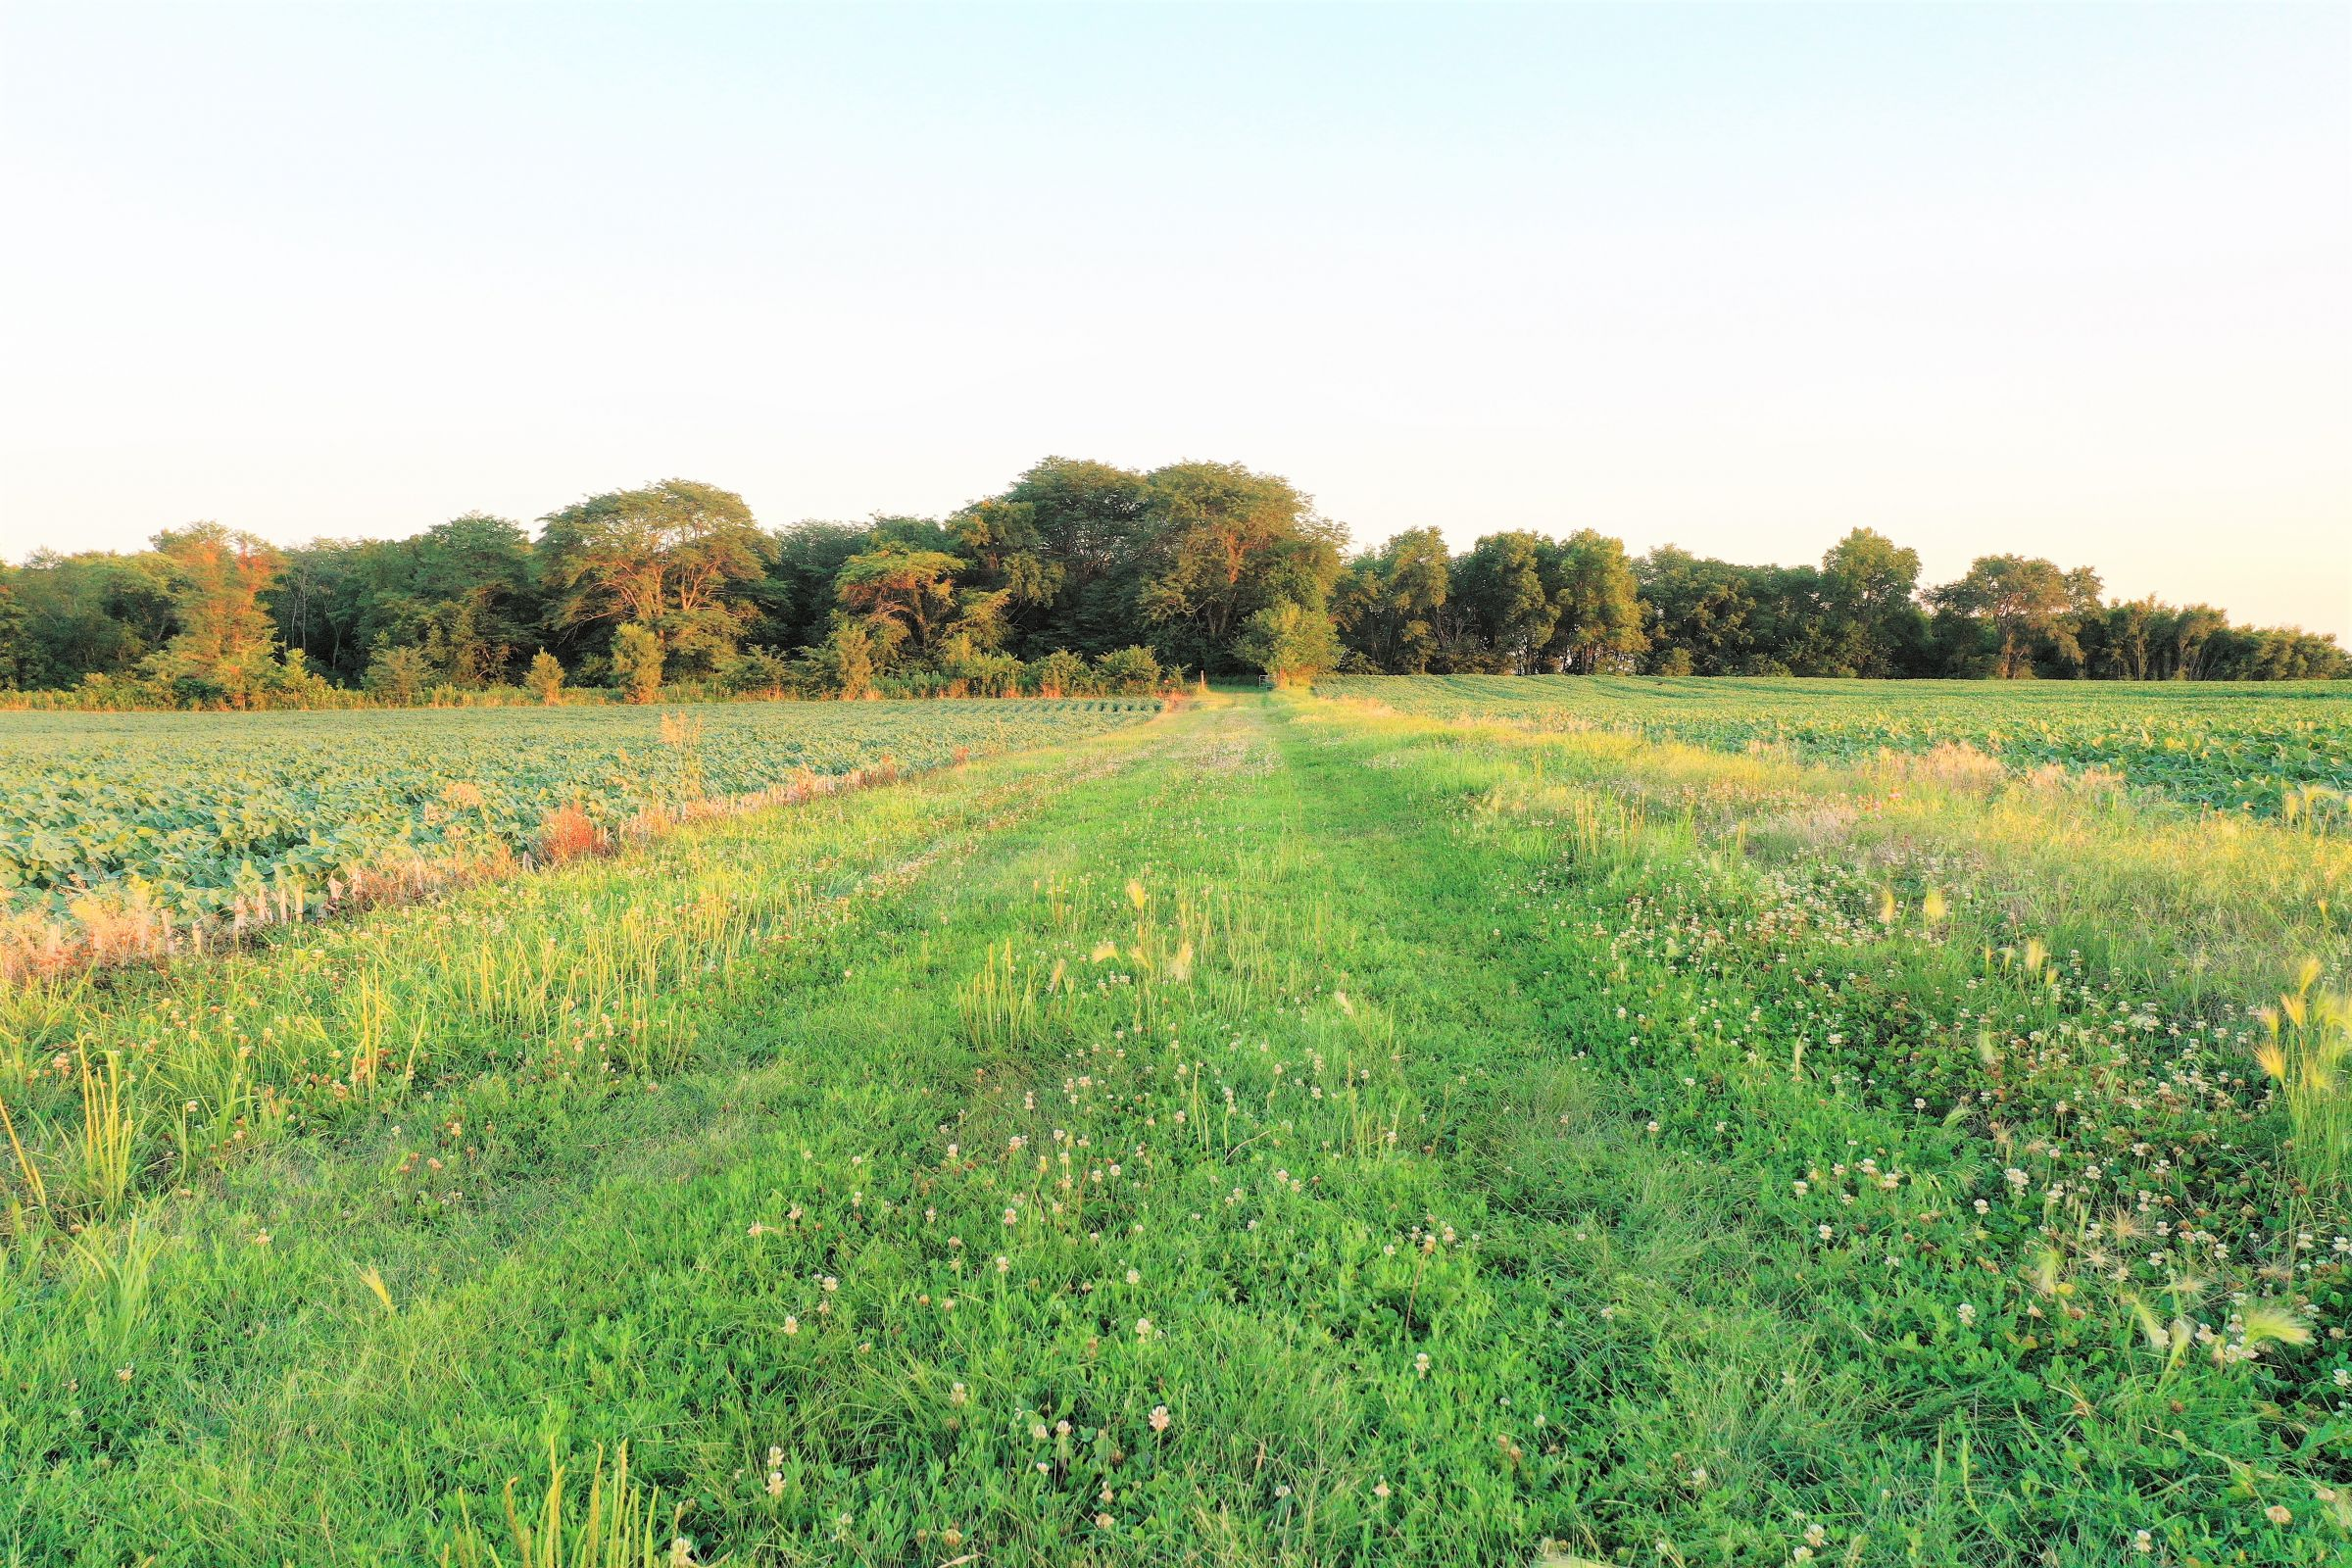 land-dallas-county-iowa-55-acres-listing-number-15081-7-2020-07-23-162429.JPG